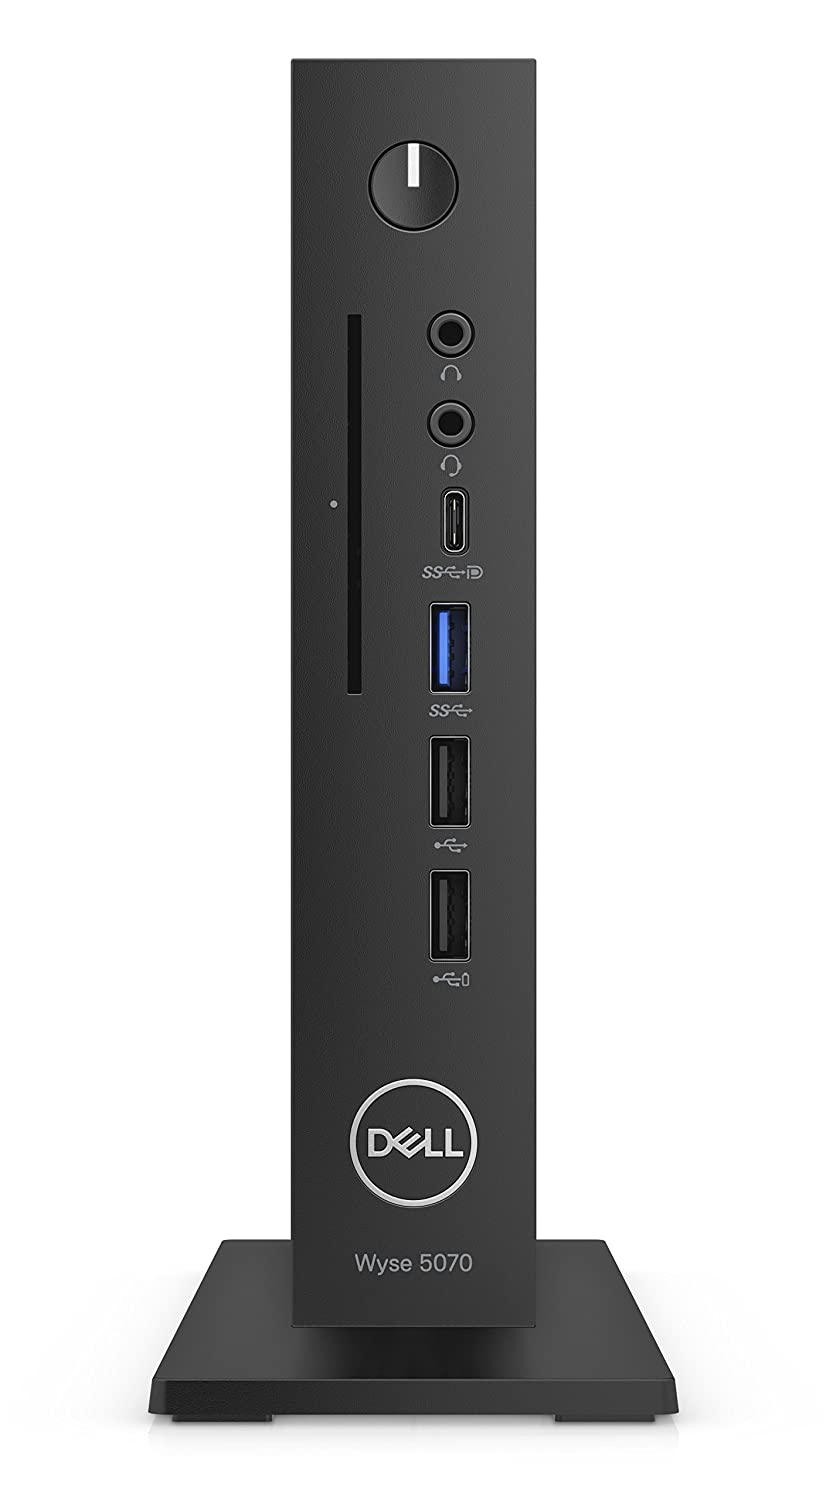 Dell Wyse 5070 1,5 GHz J4105 Negro 1,2 kg - Ordenador de sobremesa Mini (1,5 GHz, J4105, Intel® Celeron®, 2,5 GHz, 4 MB, 4 GB)